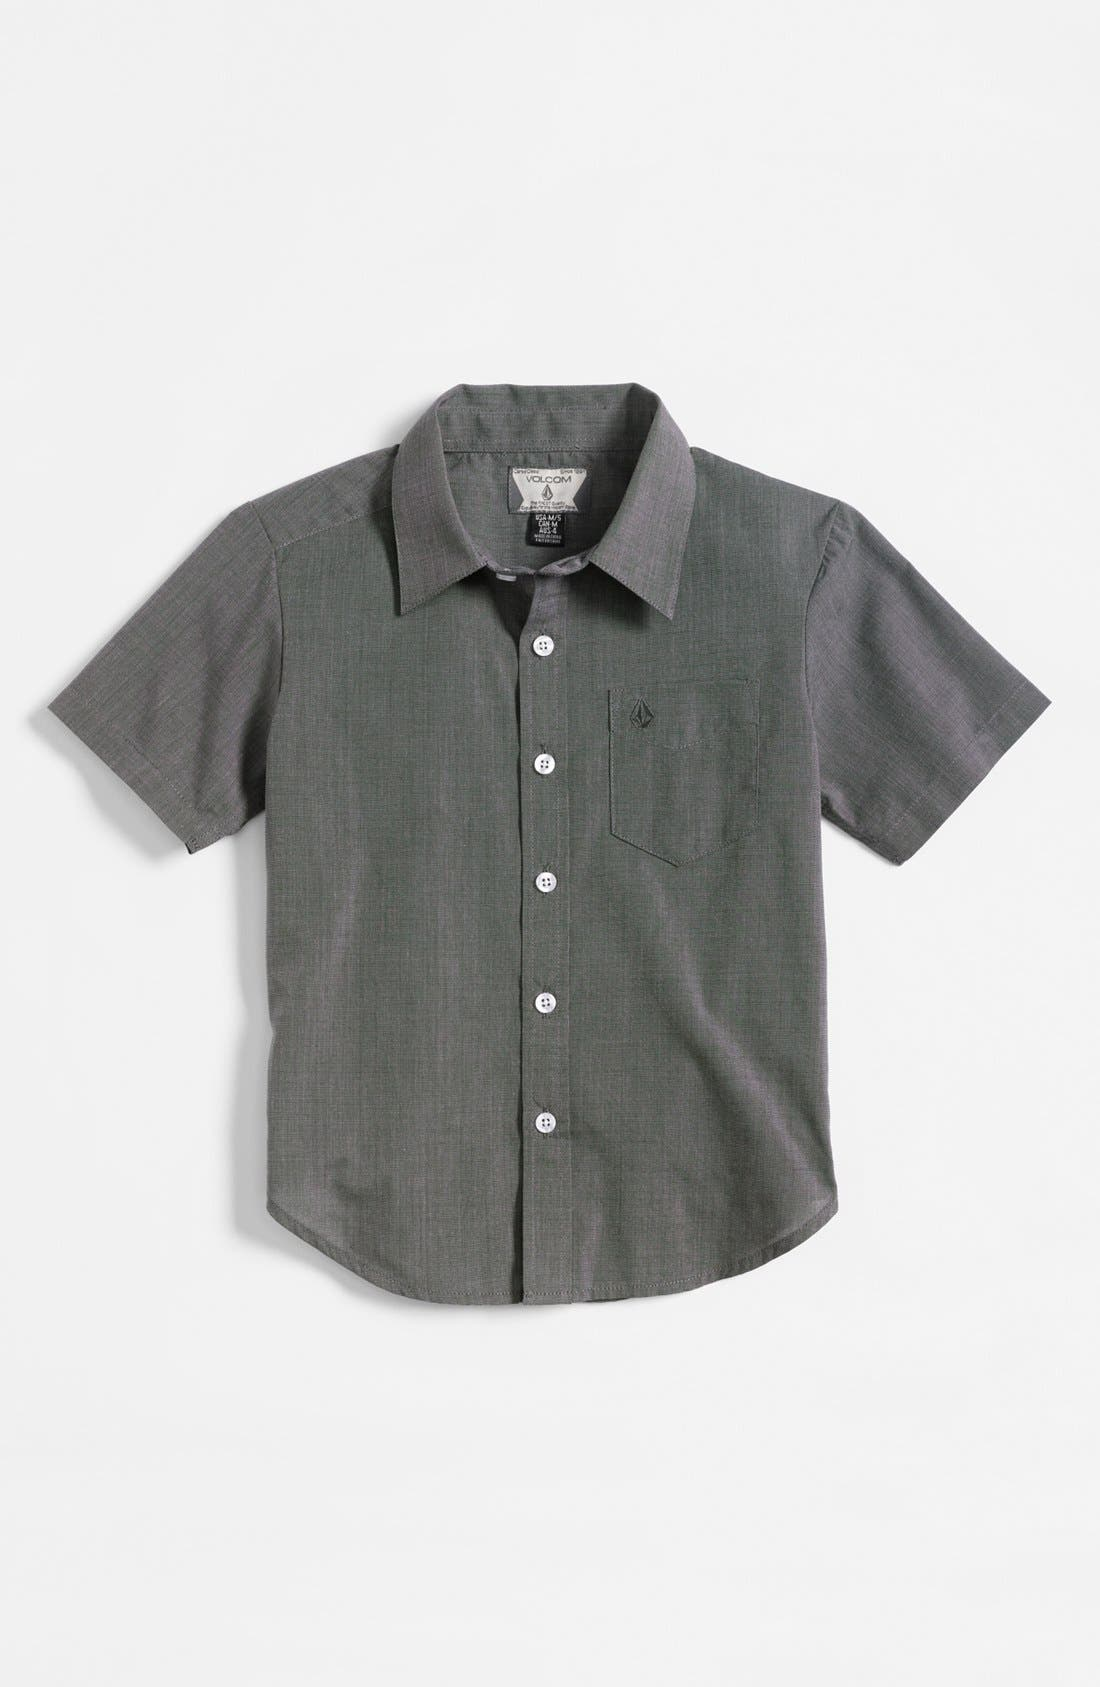 Alternate Image 1 Selected - Volcom 'Why Factor' Woven Shirt (Big Boys)